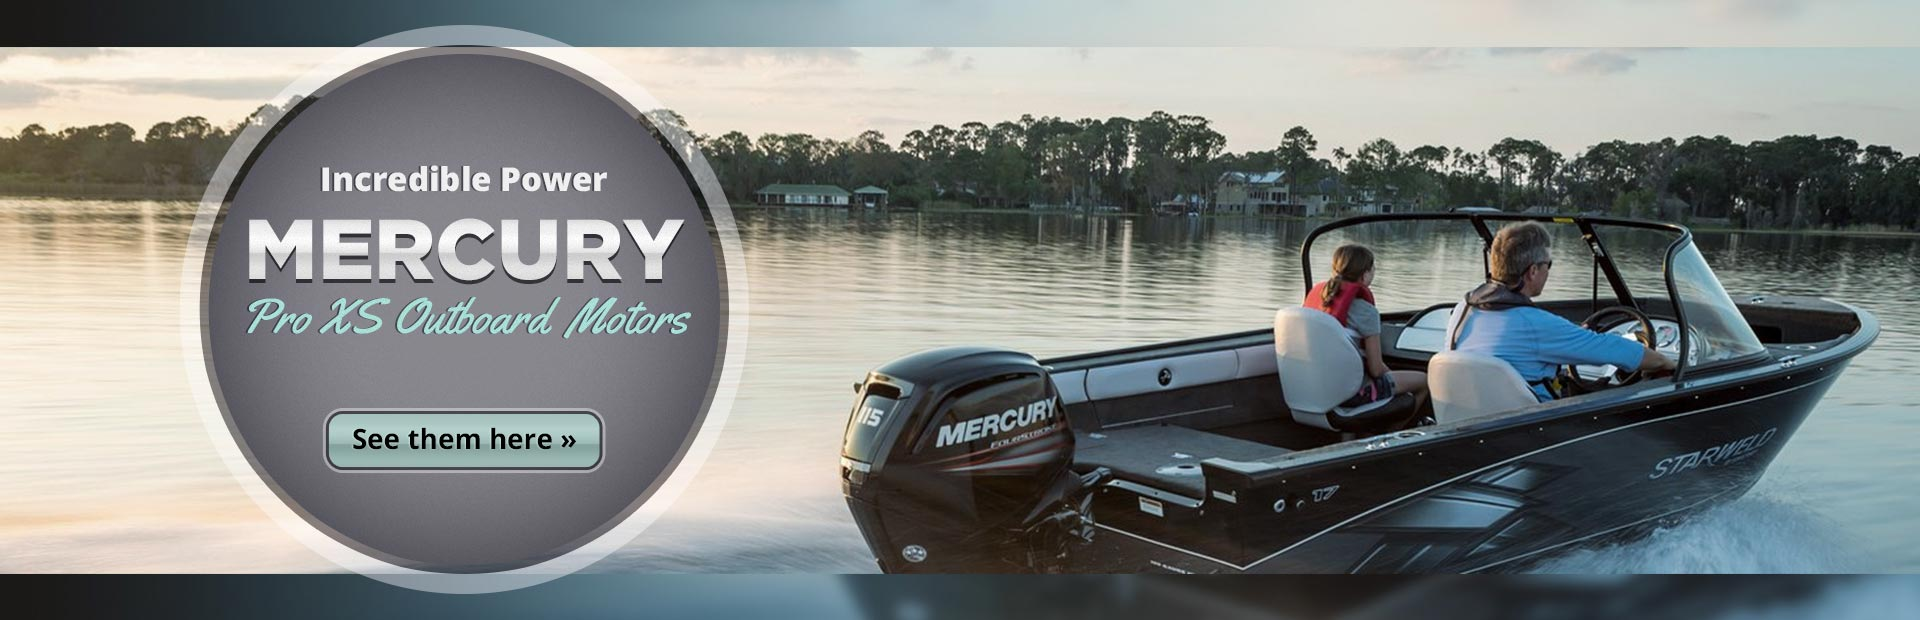 Mercury Pro XS Outboard Motors: Click here to view the models.